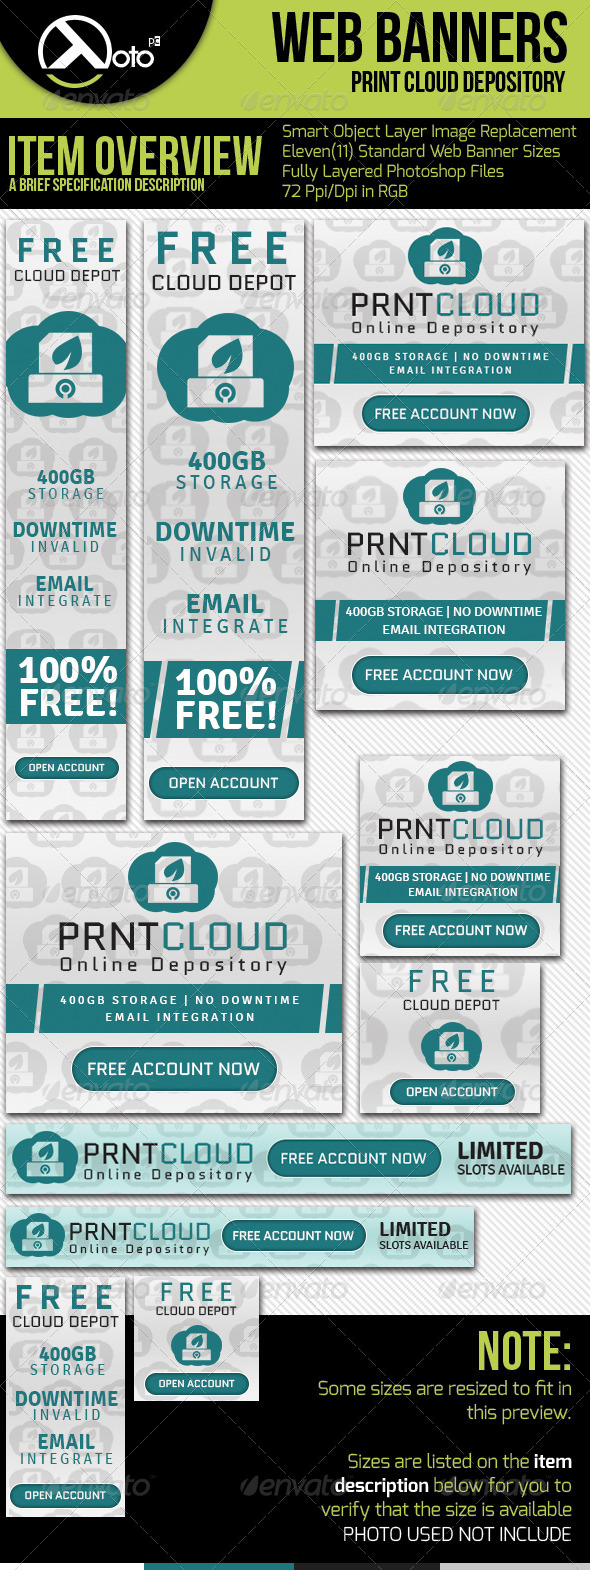 Print Cloud Online Depository Web Banners